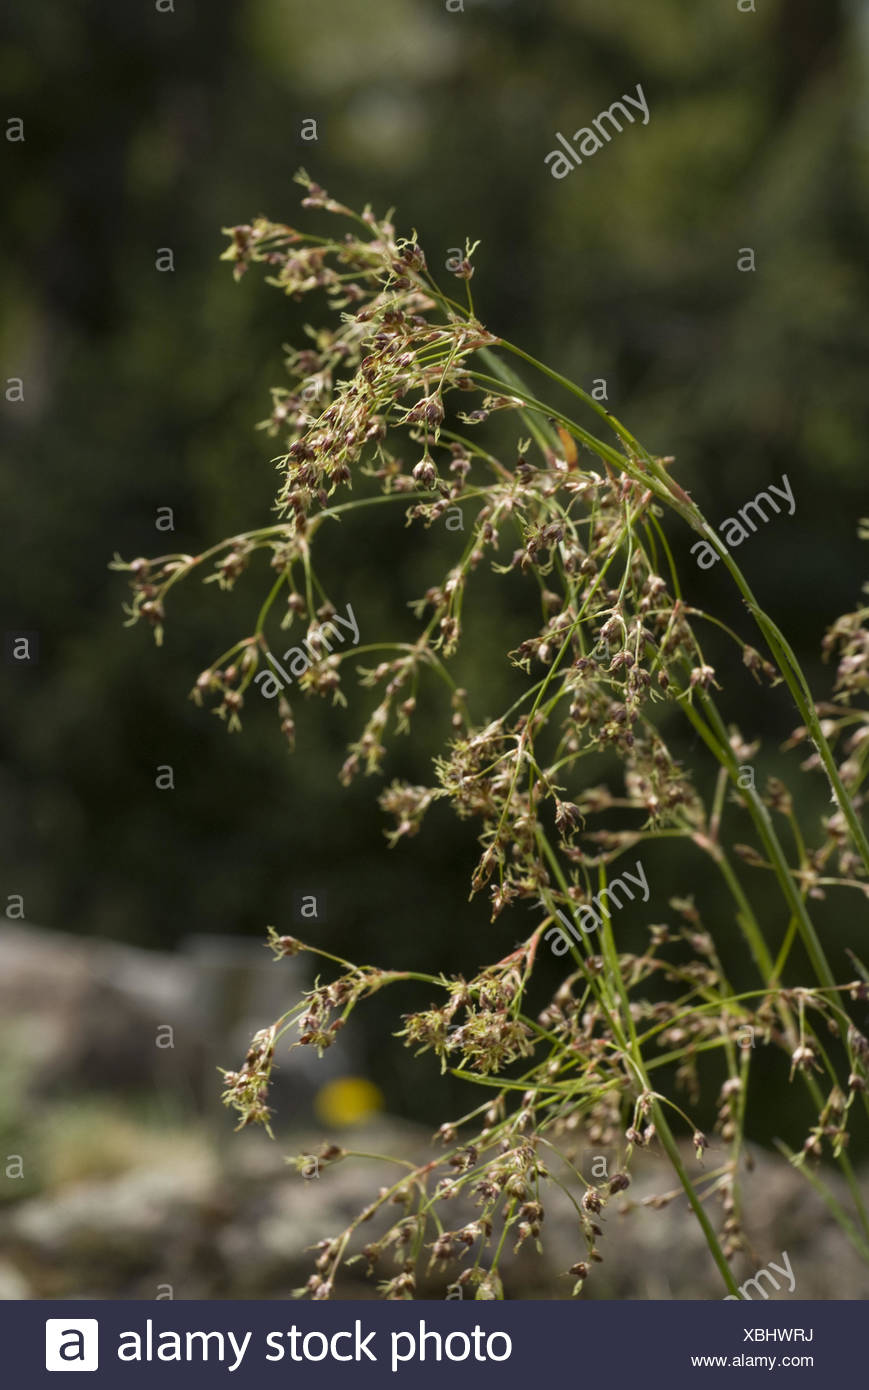 wood-rush, luzula lutea - Stock Image